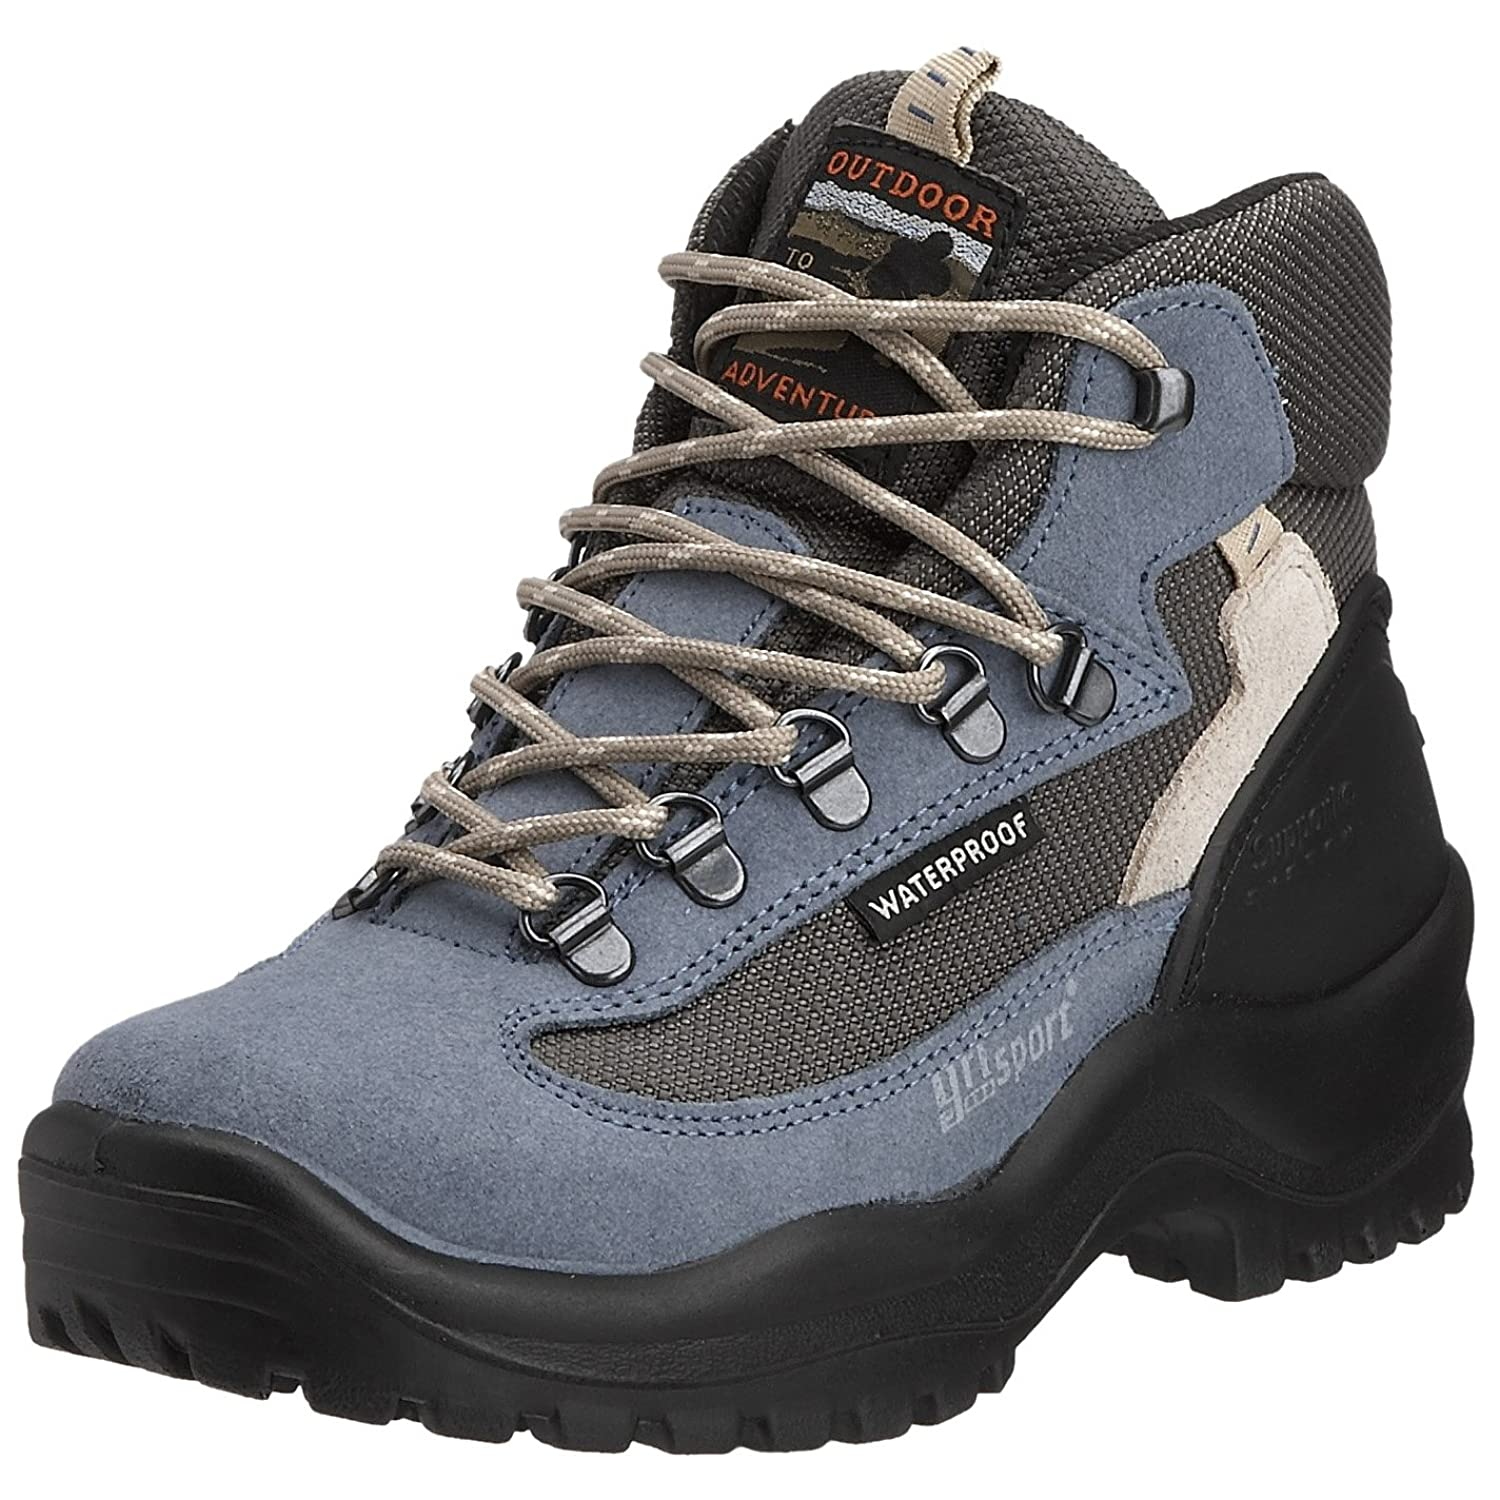 Grisport Women's Wolf Hiking Boot Navy CMG514 38 EU, 5 UK